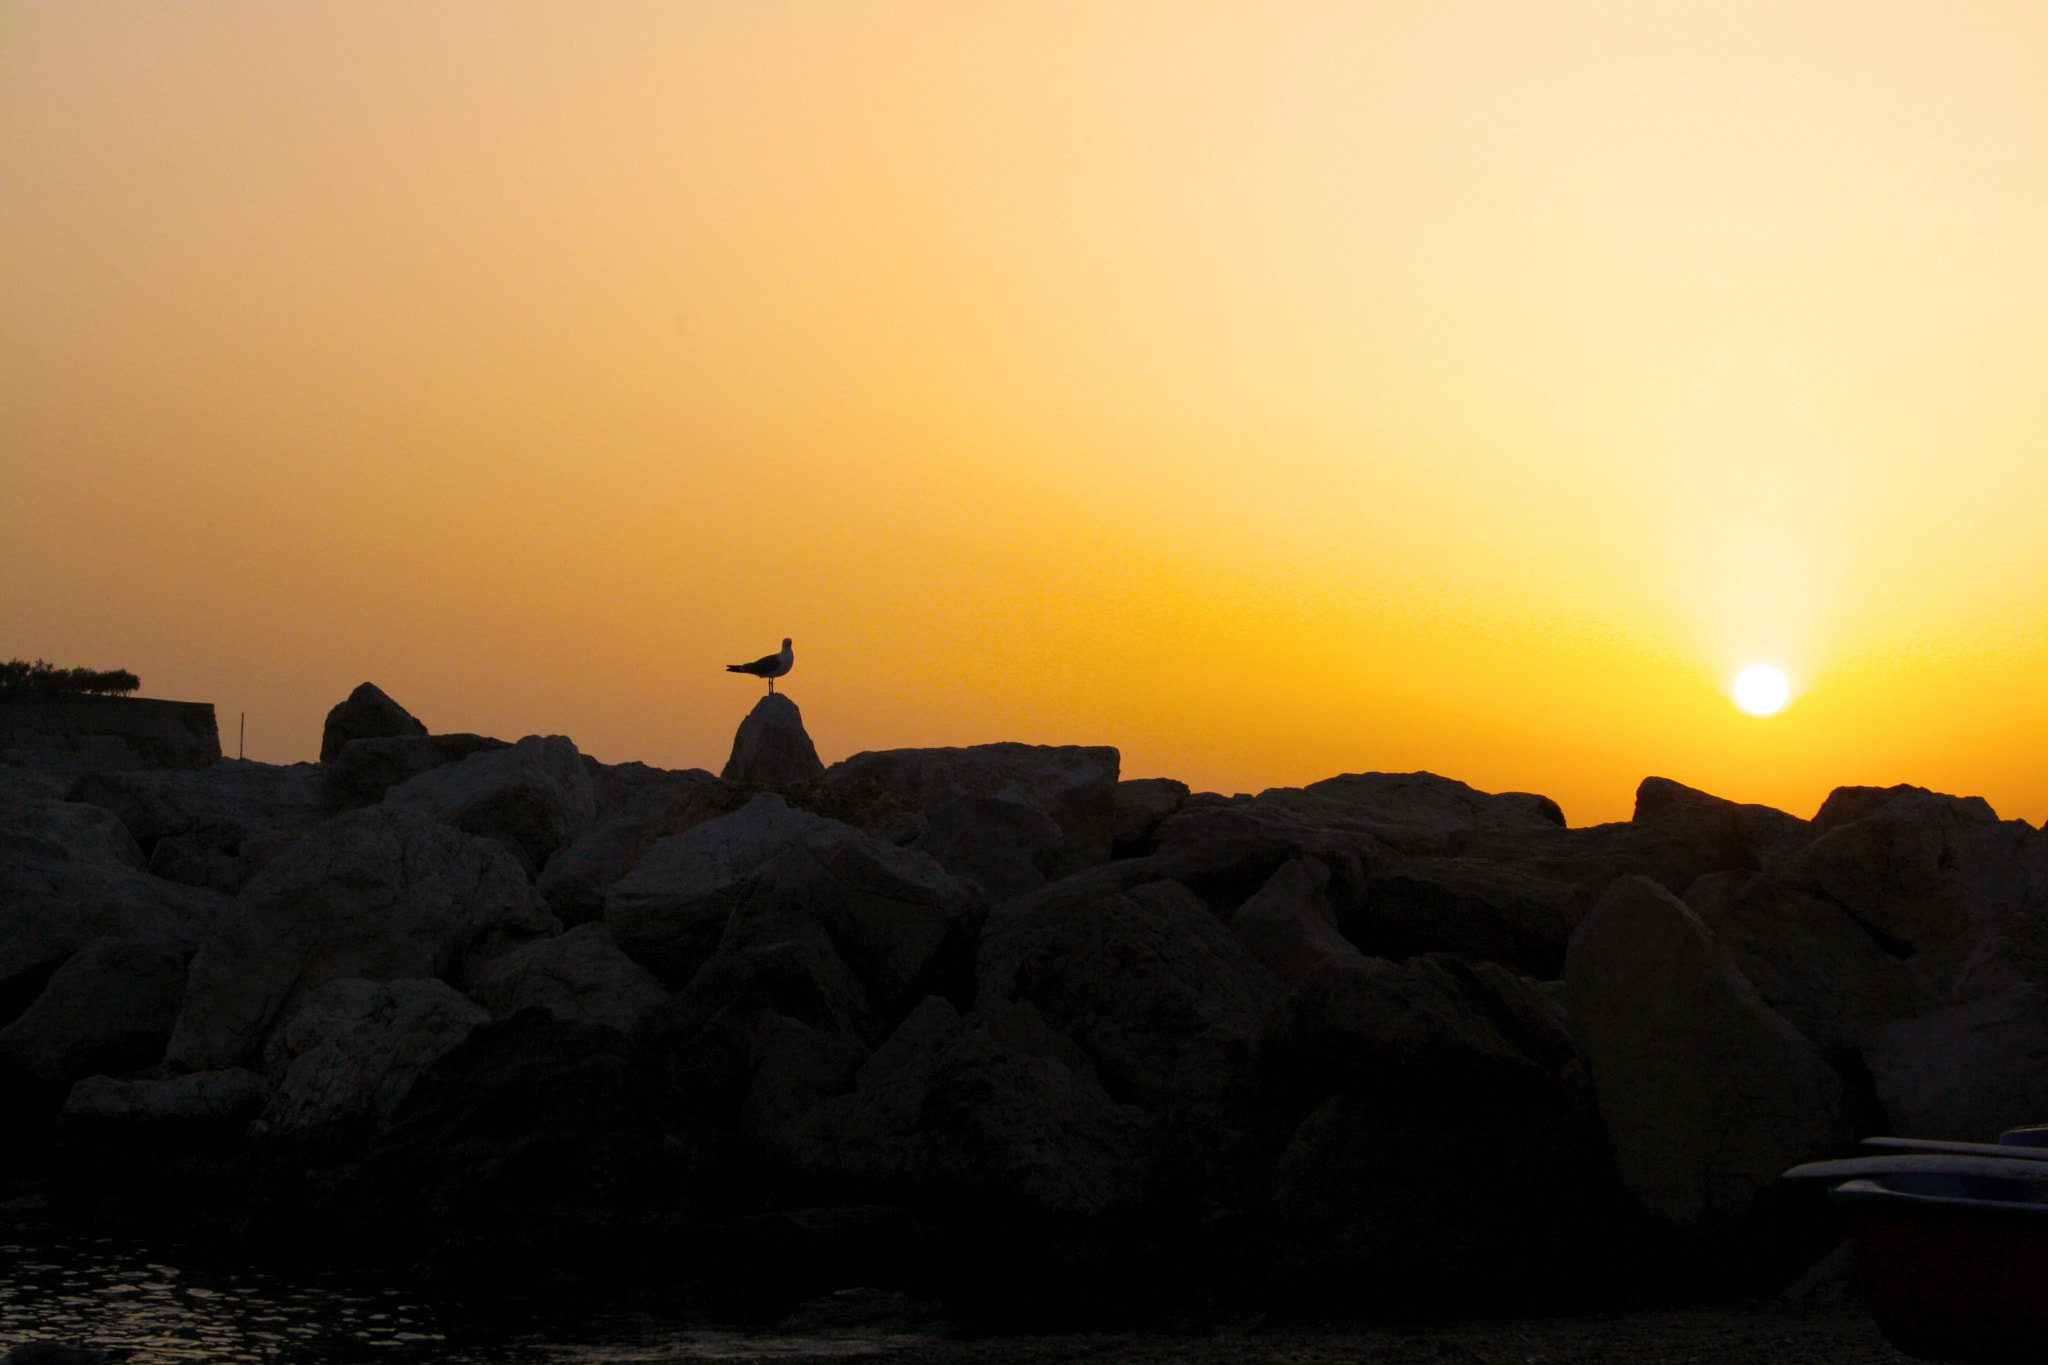 Photograph sunset and seagull by antonio biancardi on 500px